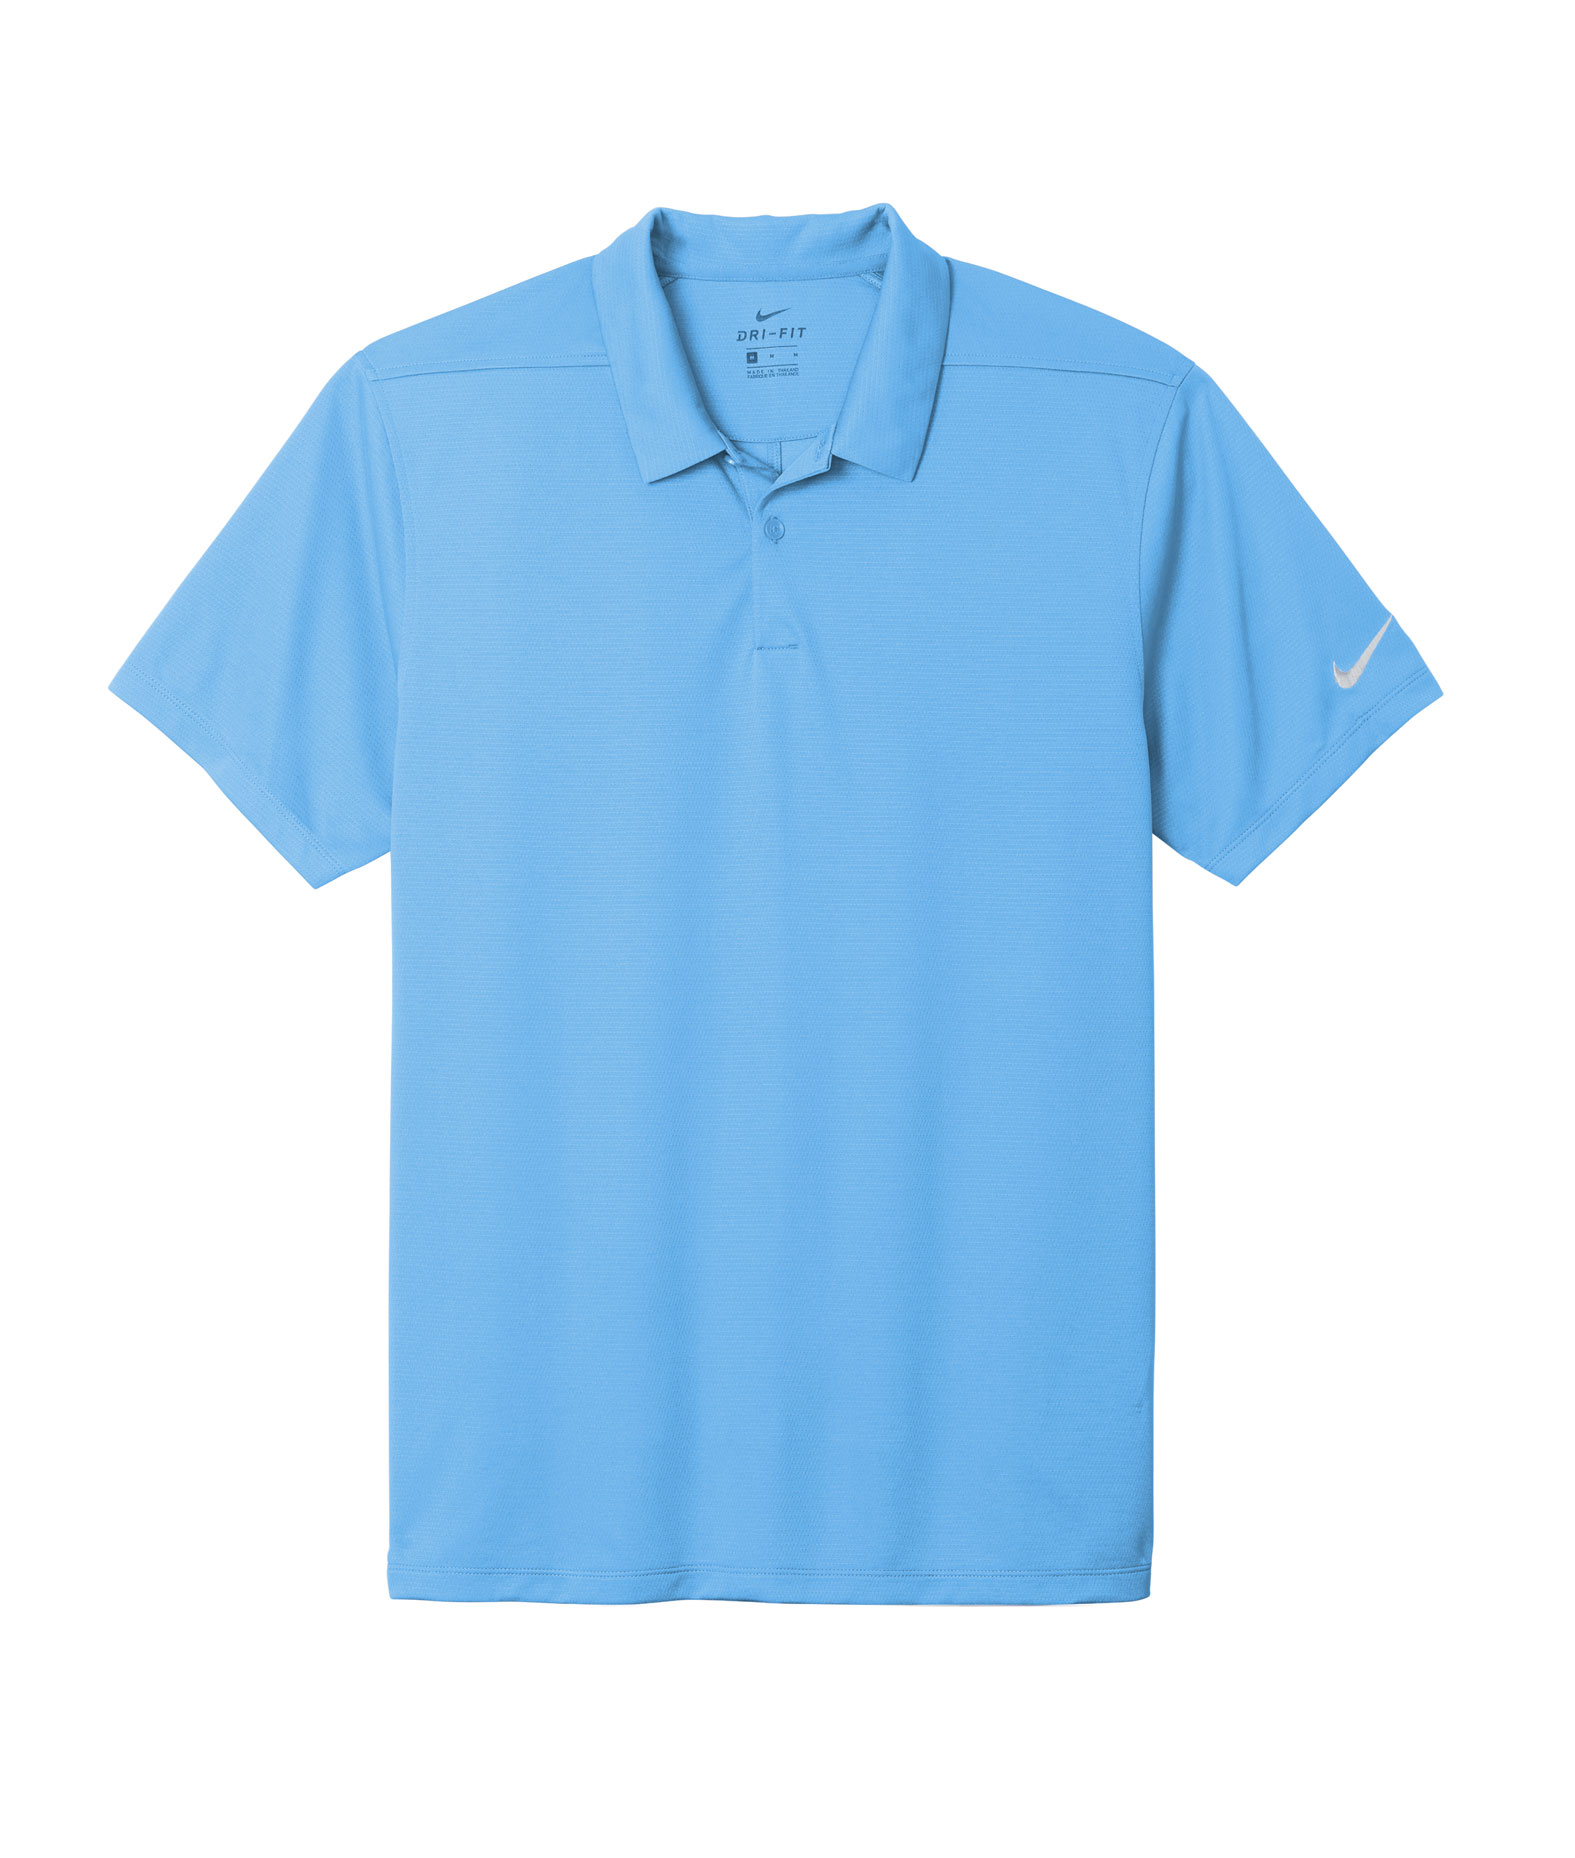 Nike Adult Dry Essential Solid Polo